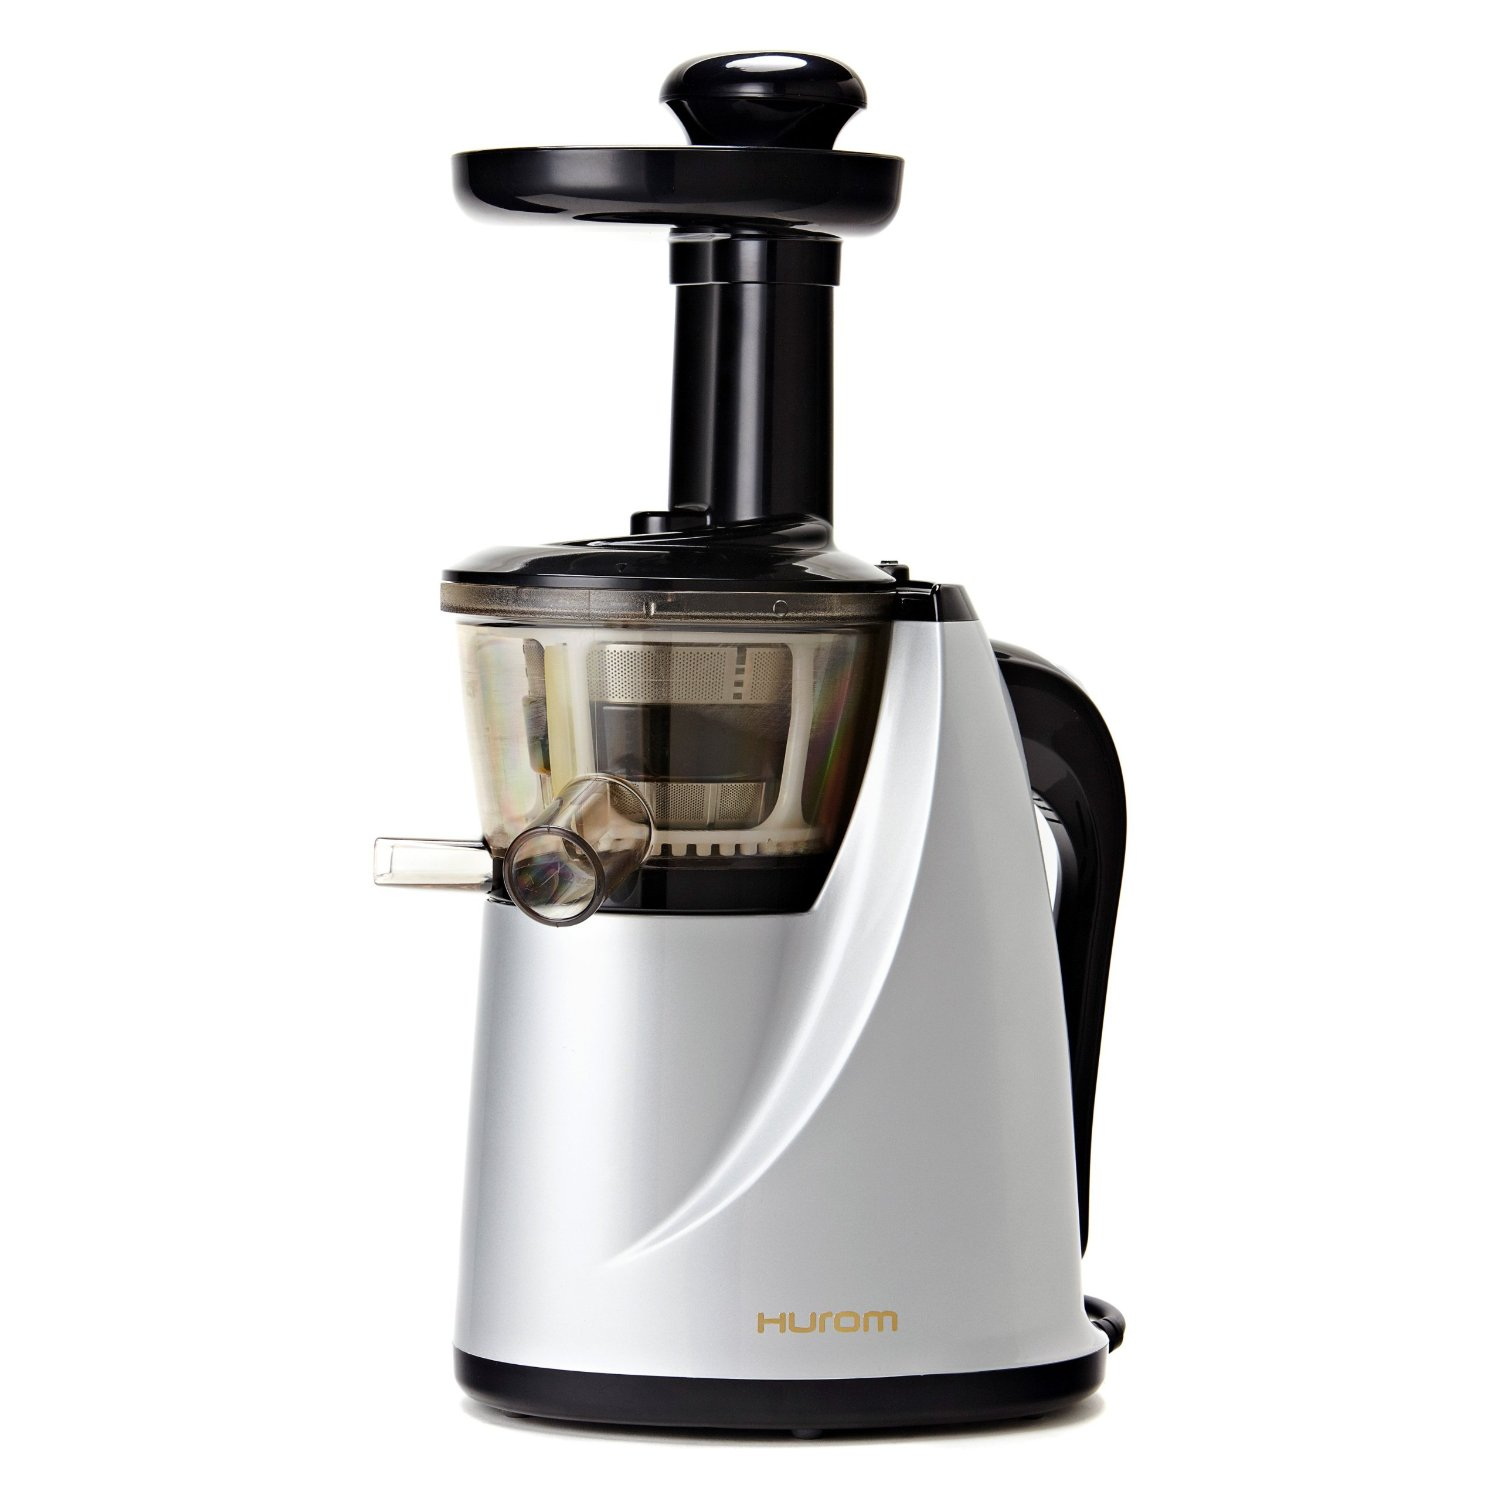 Green Juice Slow Juicer : Hurom HU-100 Masticating Slow Juicer Review - Best Cold Press Juicers